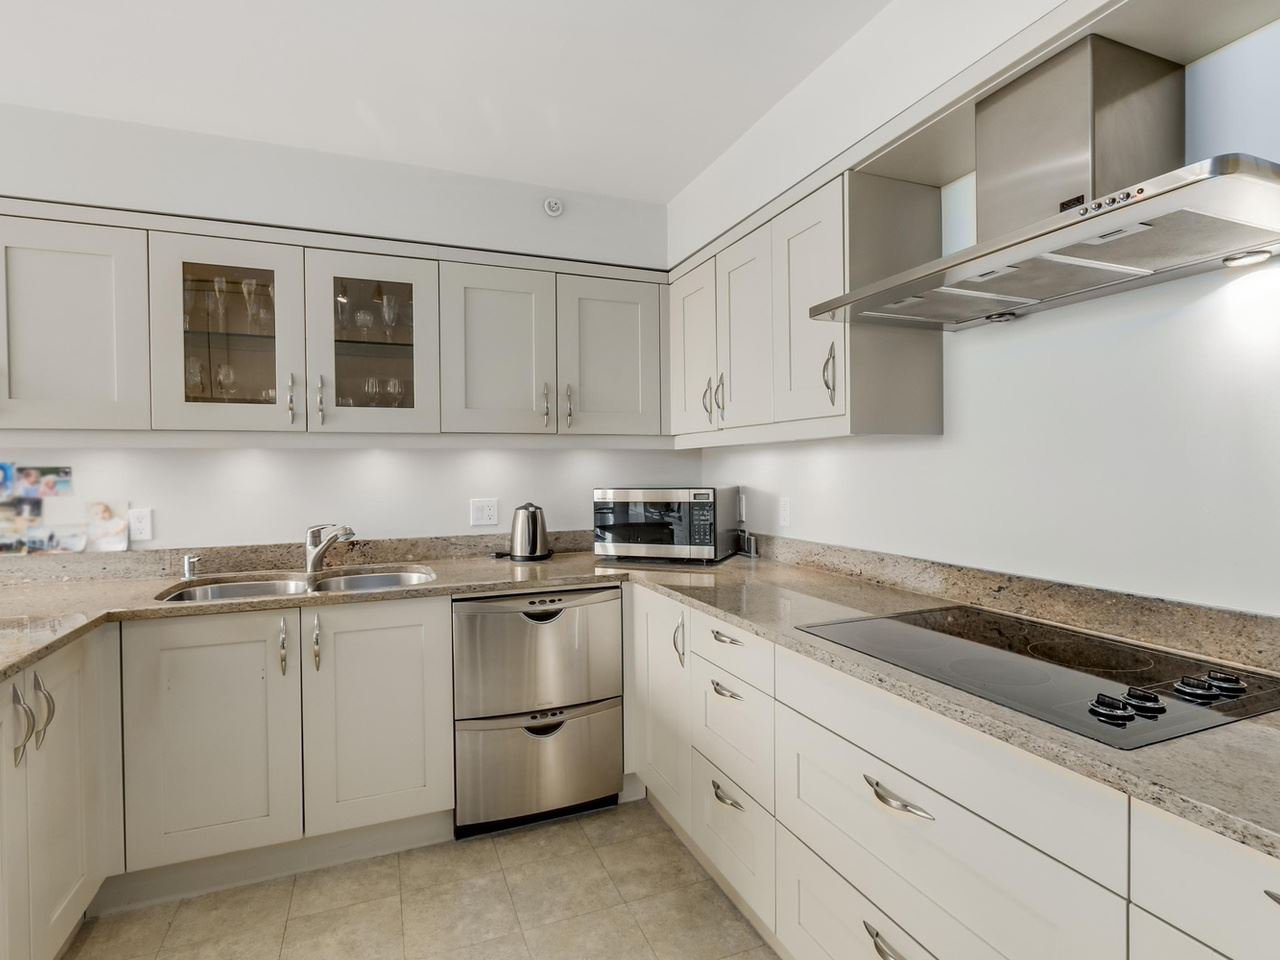 """Photo 8: Photos: PH1 2108 W 38TH Avenue in Vancouver: Kerrisdale Condo for sale in """"THE WILSHIRE"""" (Vancouver West)  : MLS®# R2072443"""